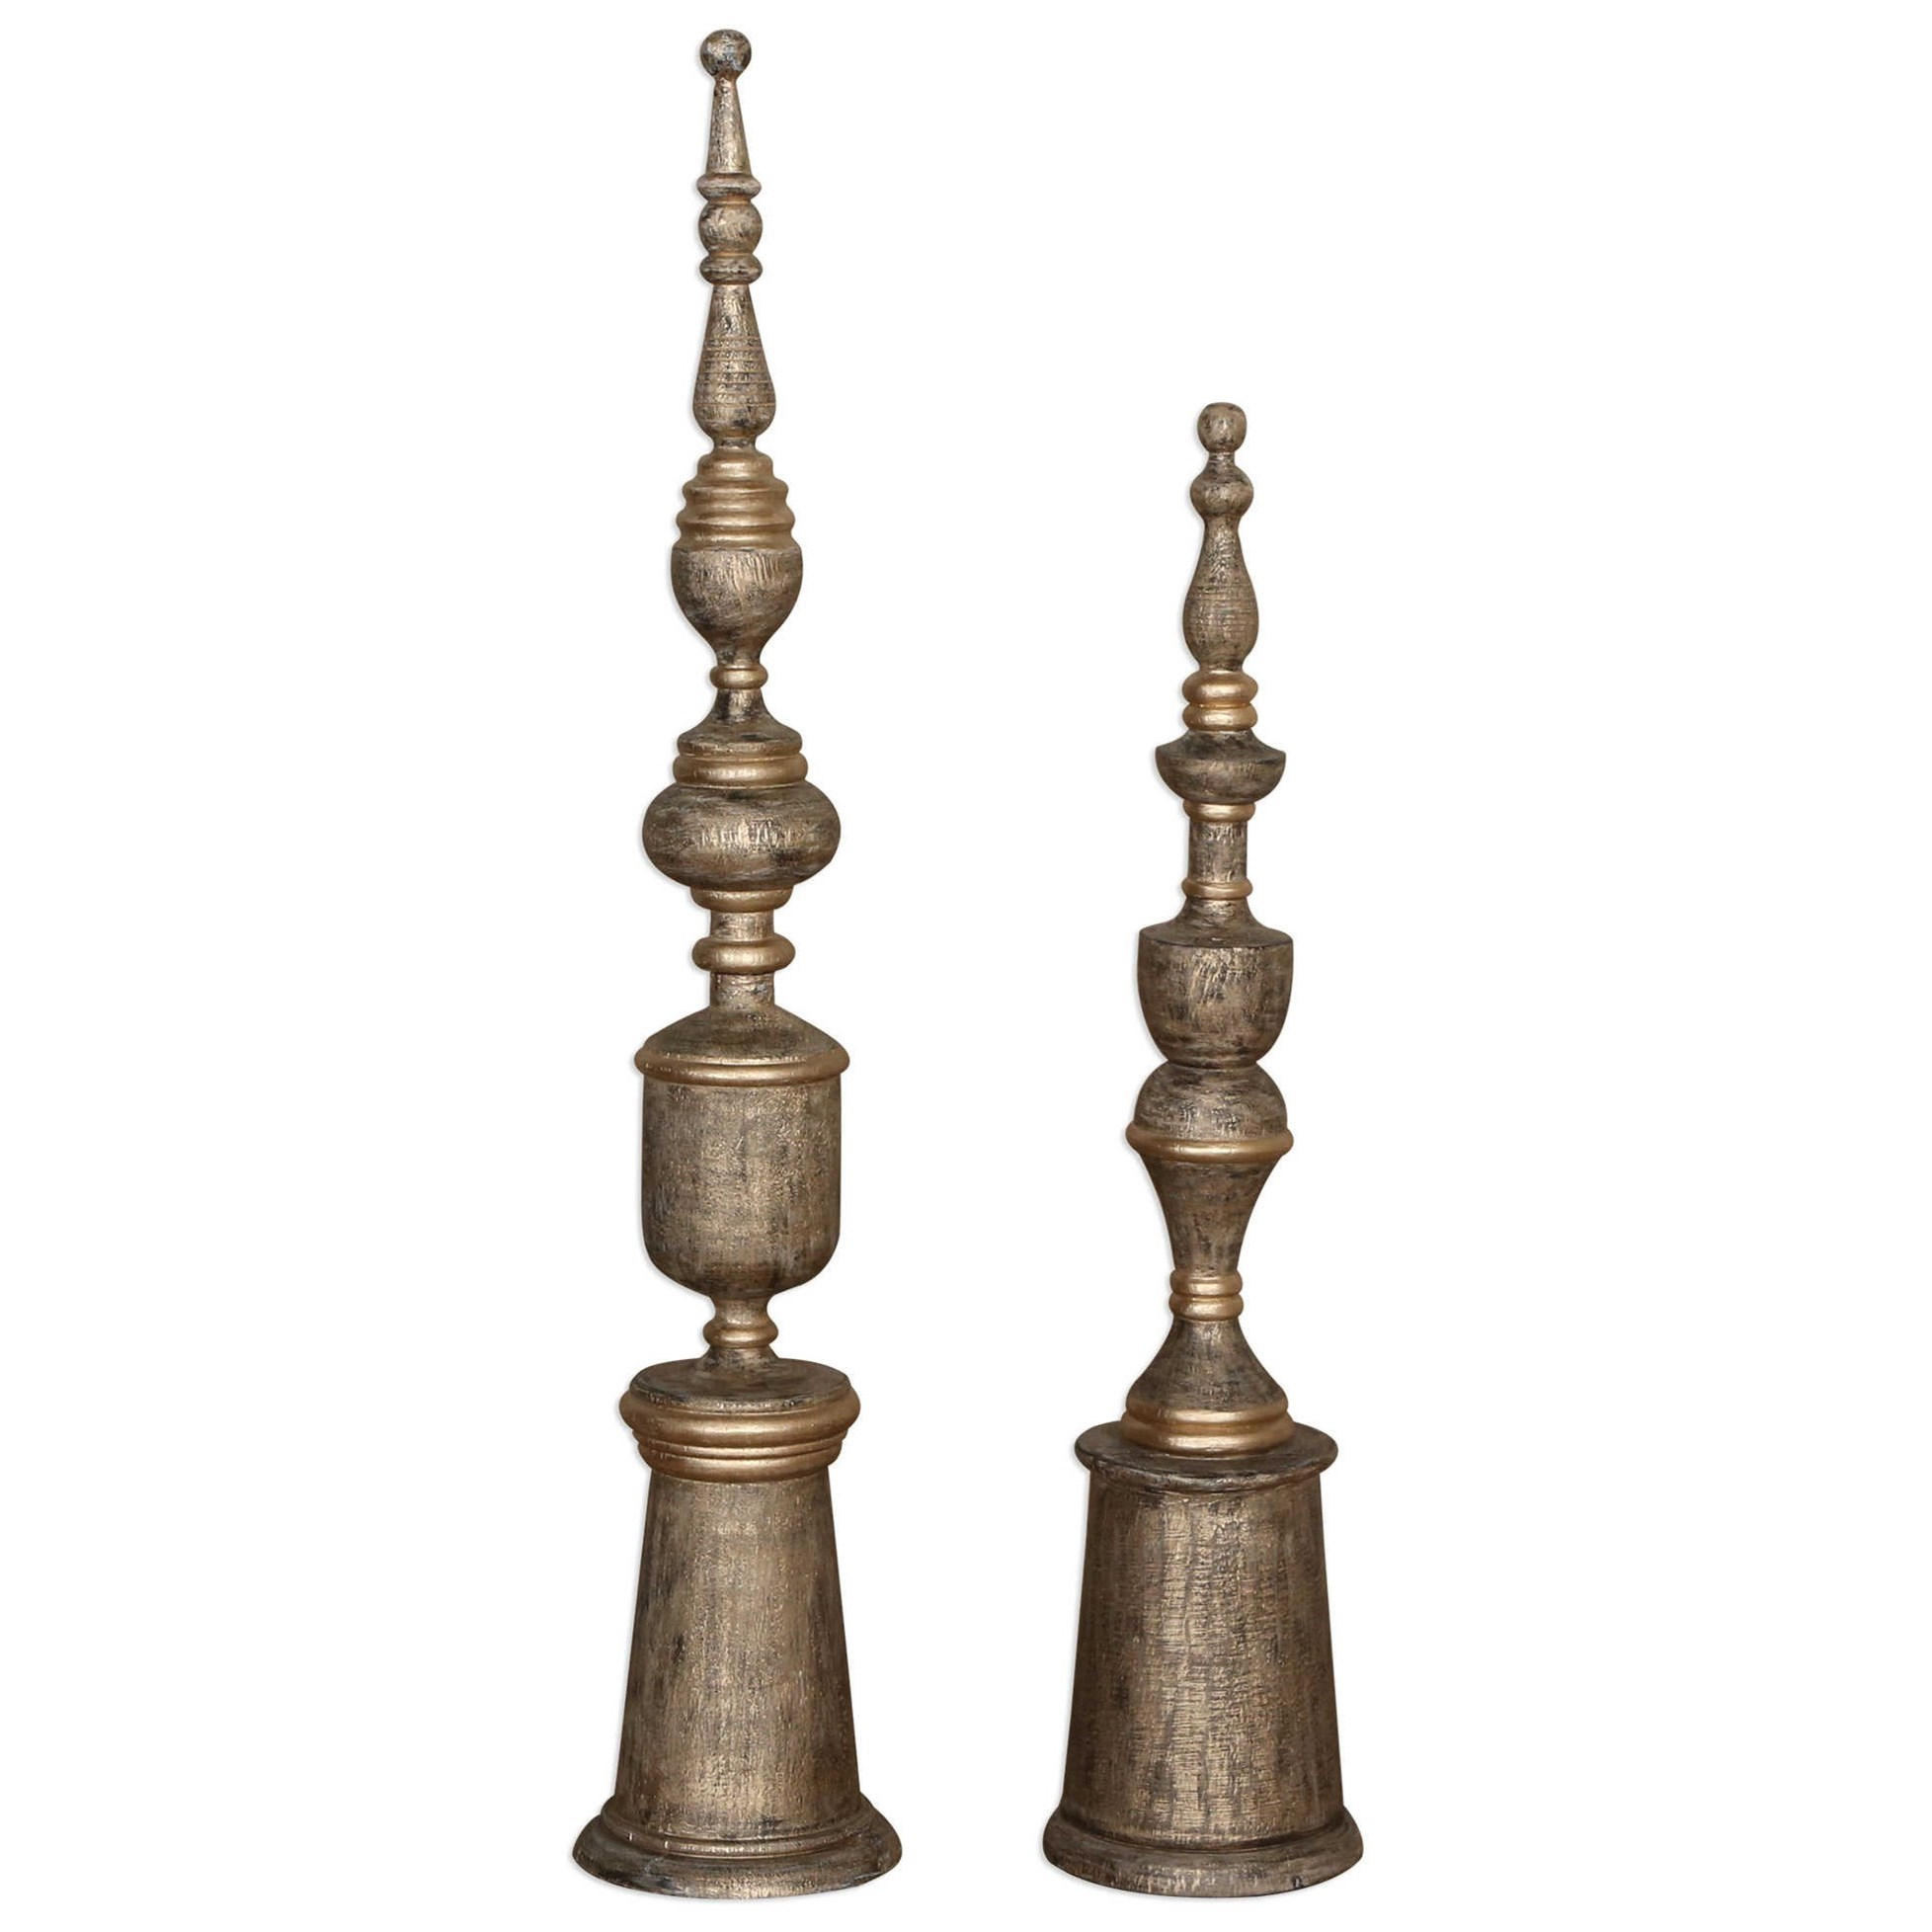 Nalini Antique Gold Finials Set of 2